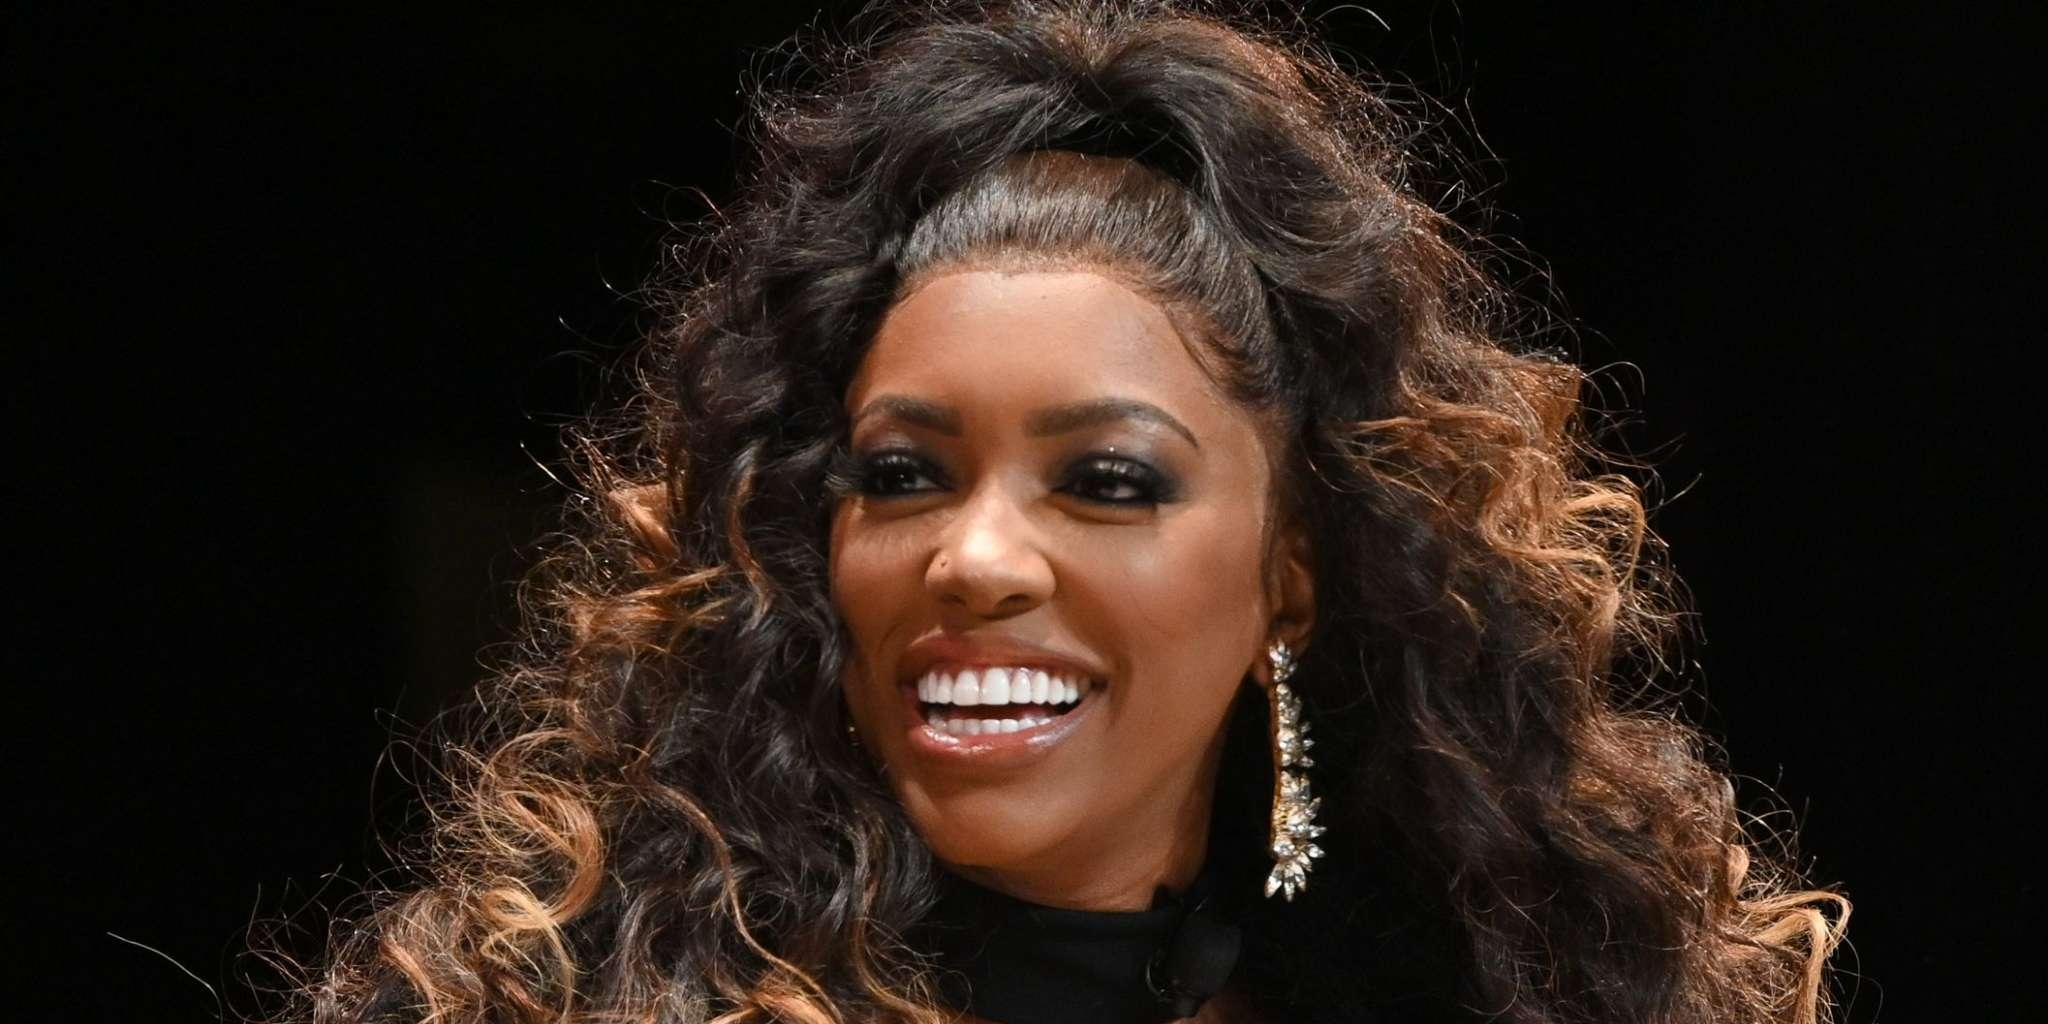 Porsha Williams Makes Her Grandfather Proud With Her Vibe - See The Video